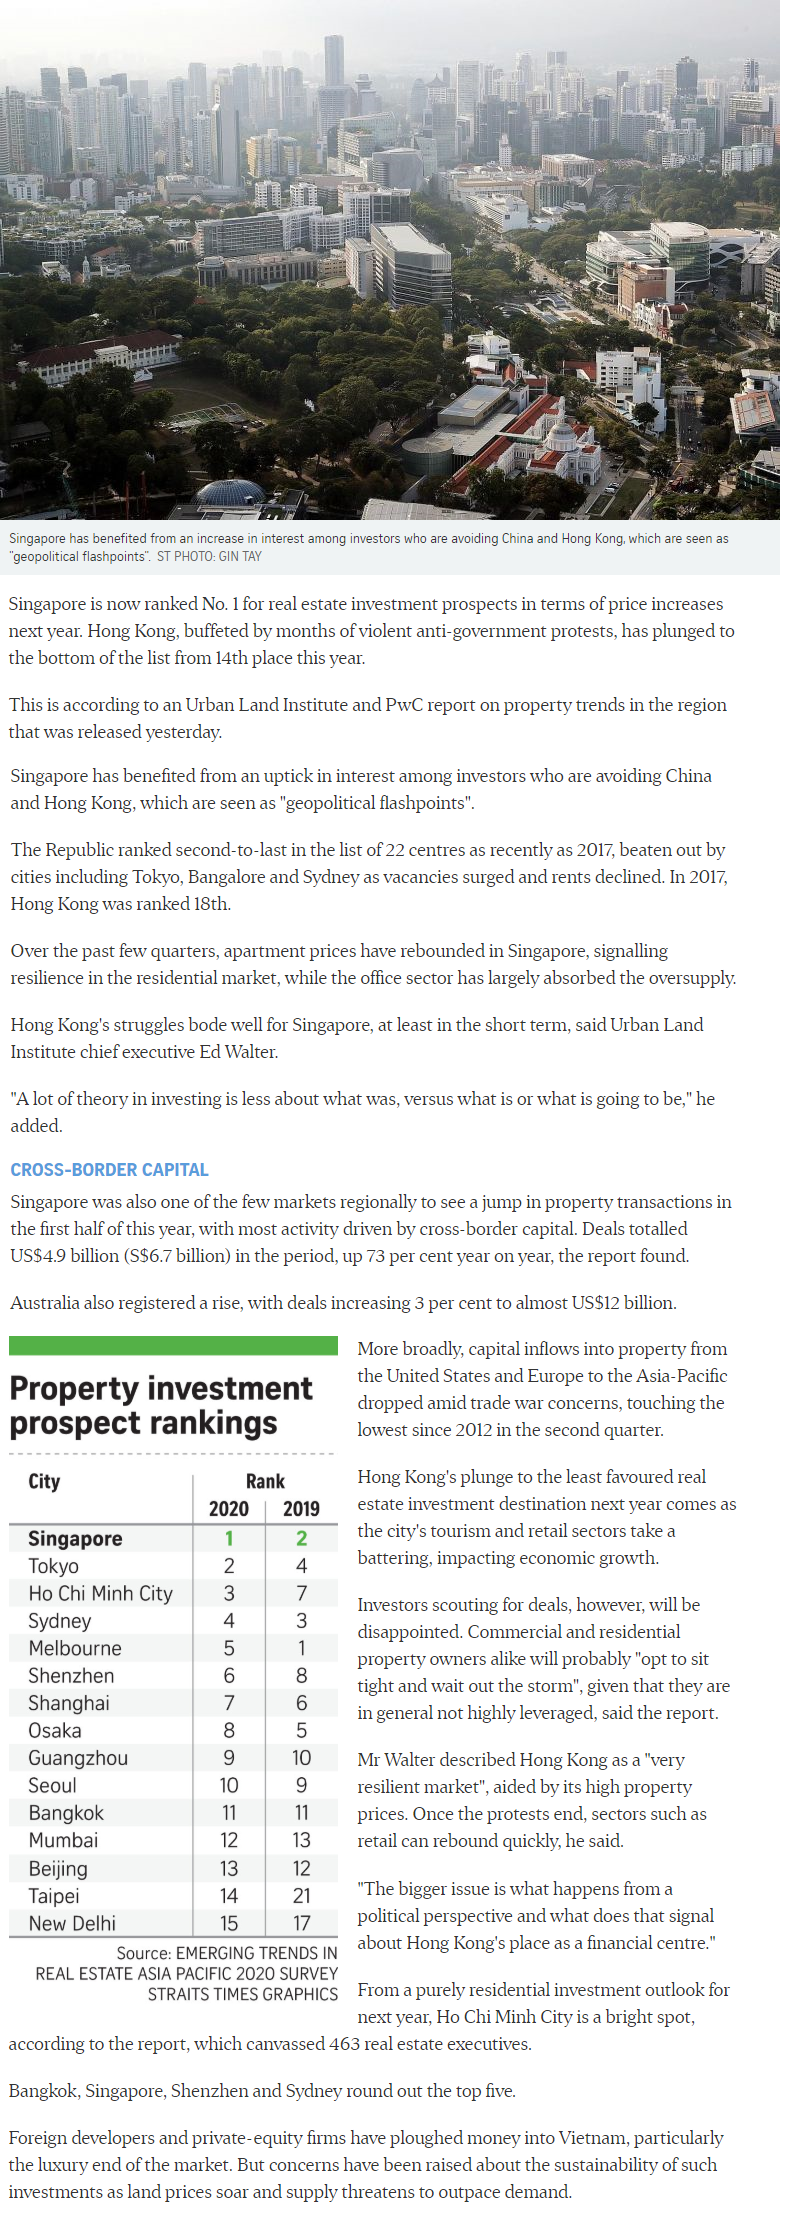 Pefect Ten - Singapore Tops Region For Property Investment Prospects